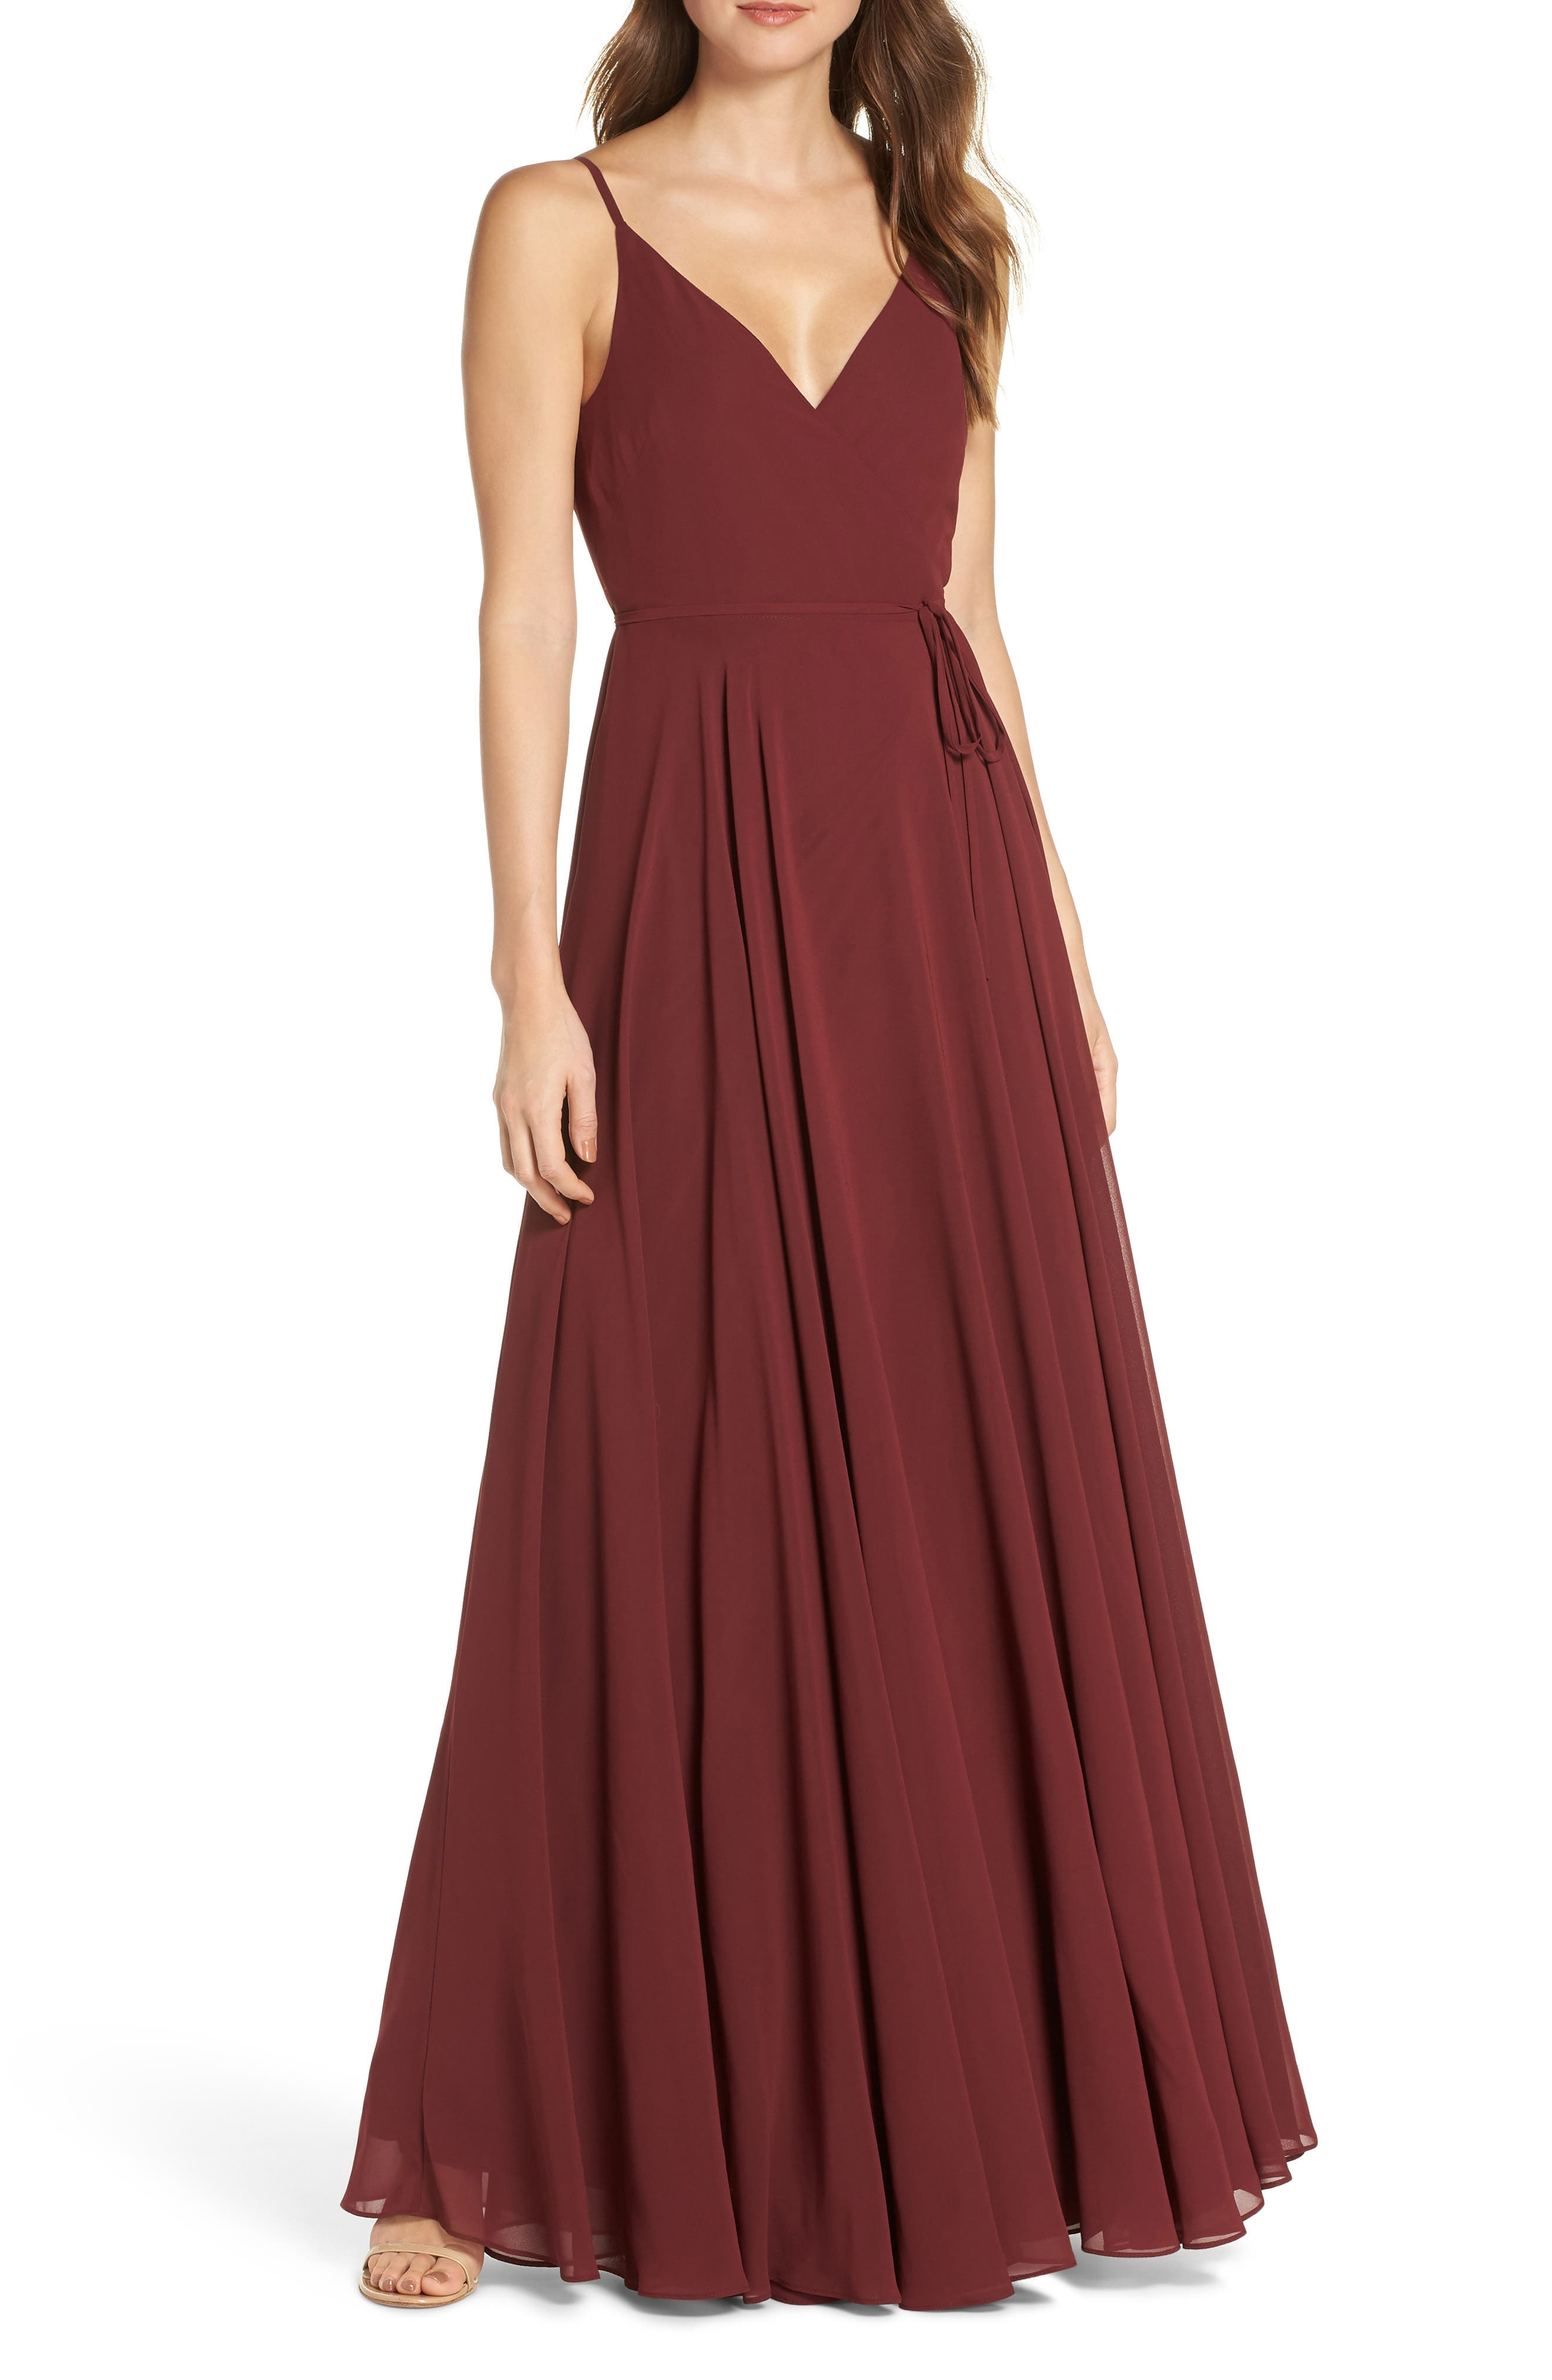 Jenny Yoo James Sleeveless Wrap Chiffon Evening Dress, Red